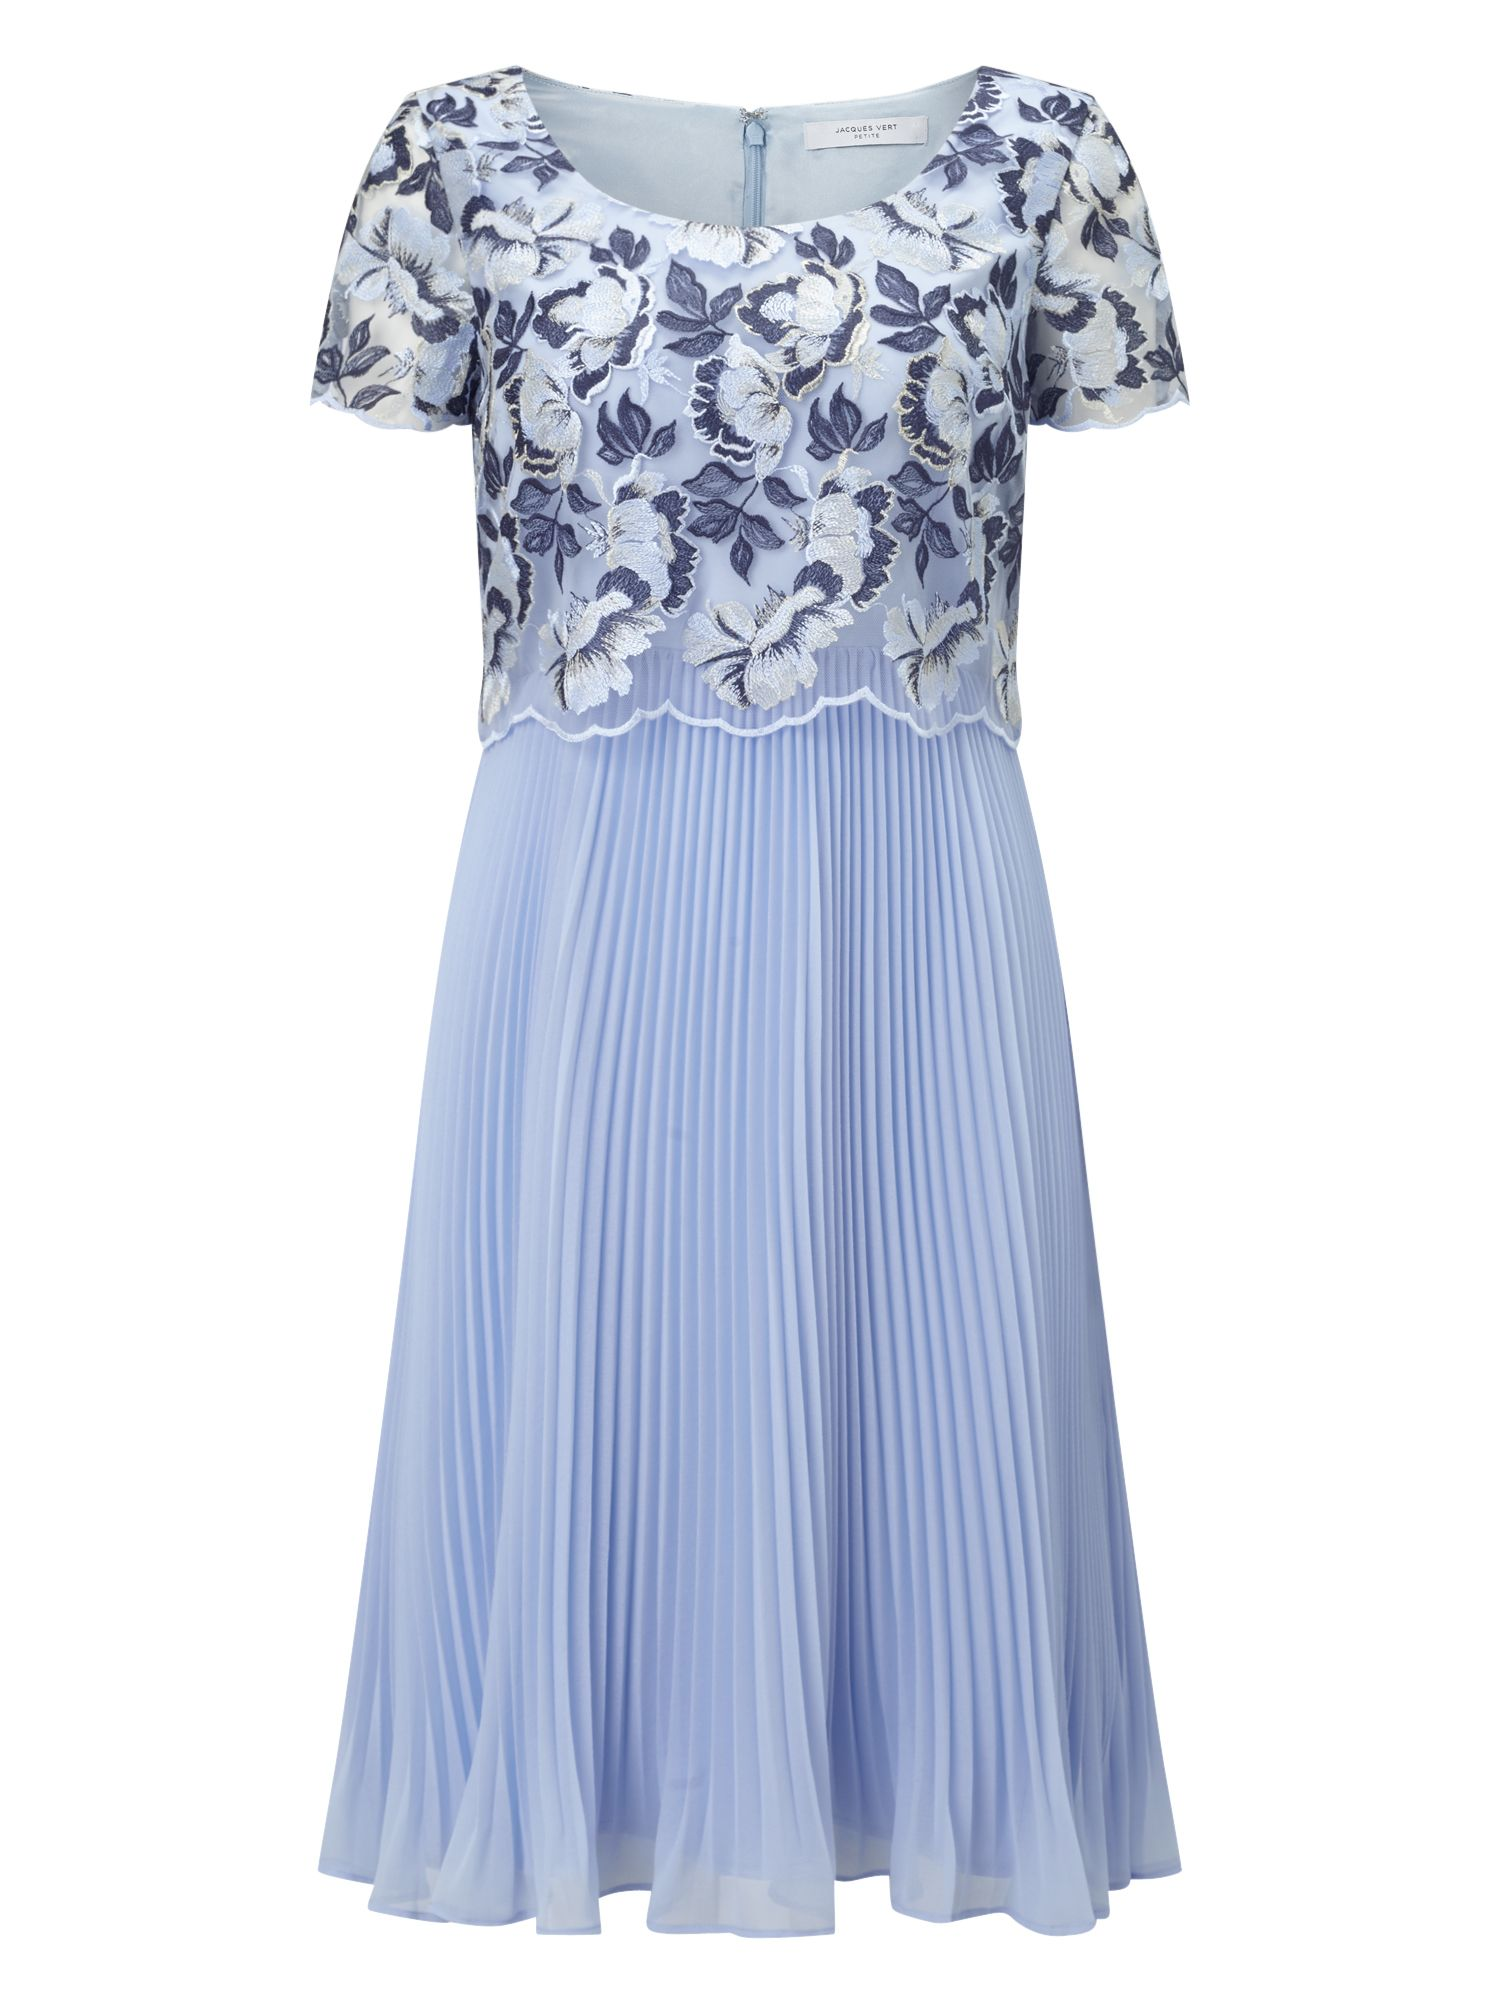 Jacques Vert Petite Floral Plisse Dress, Blue